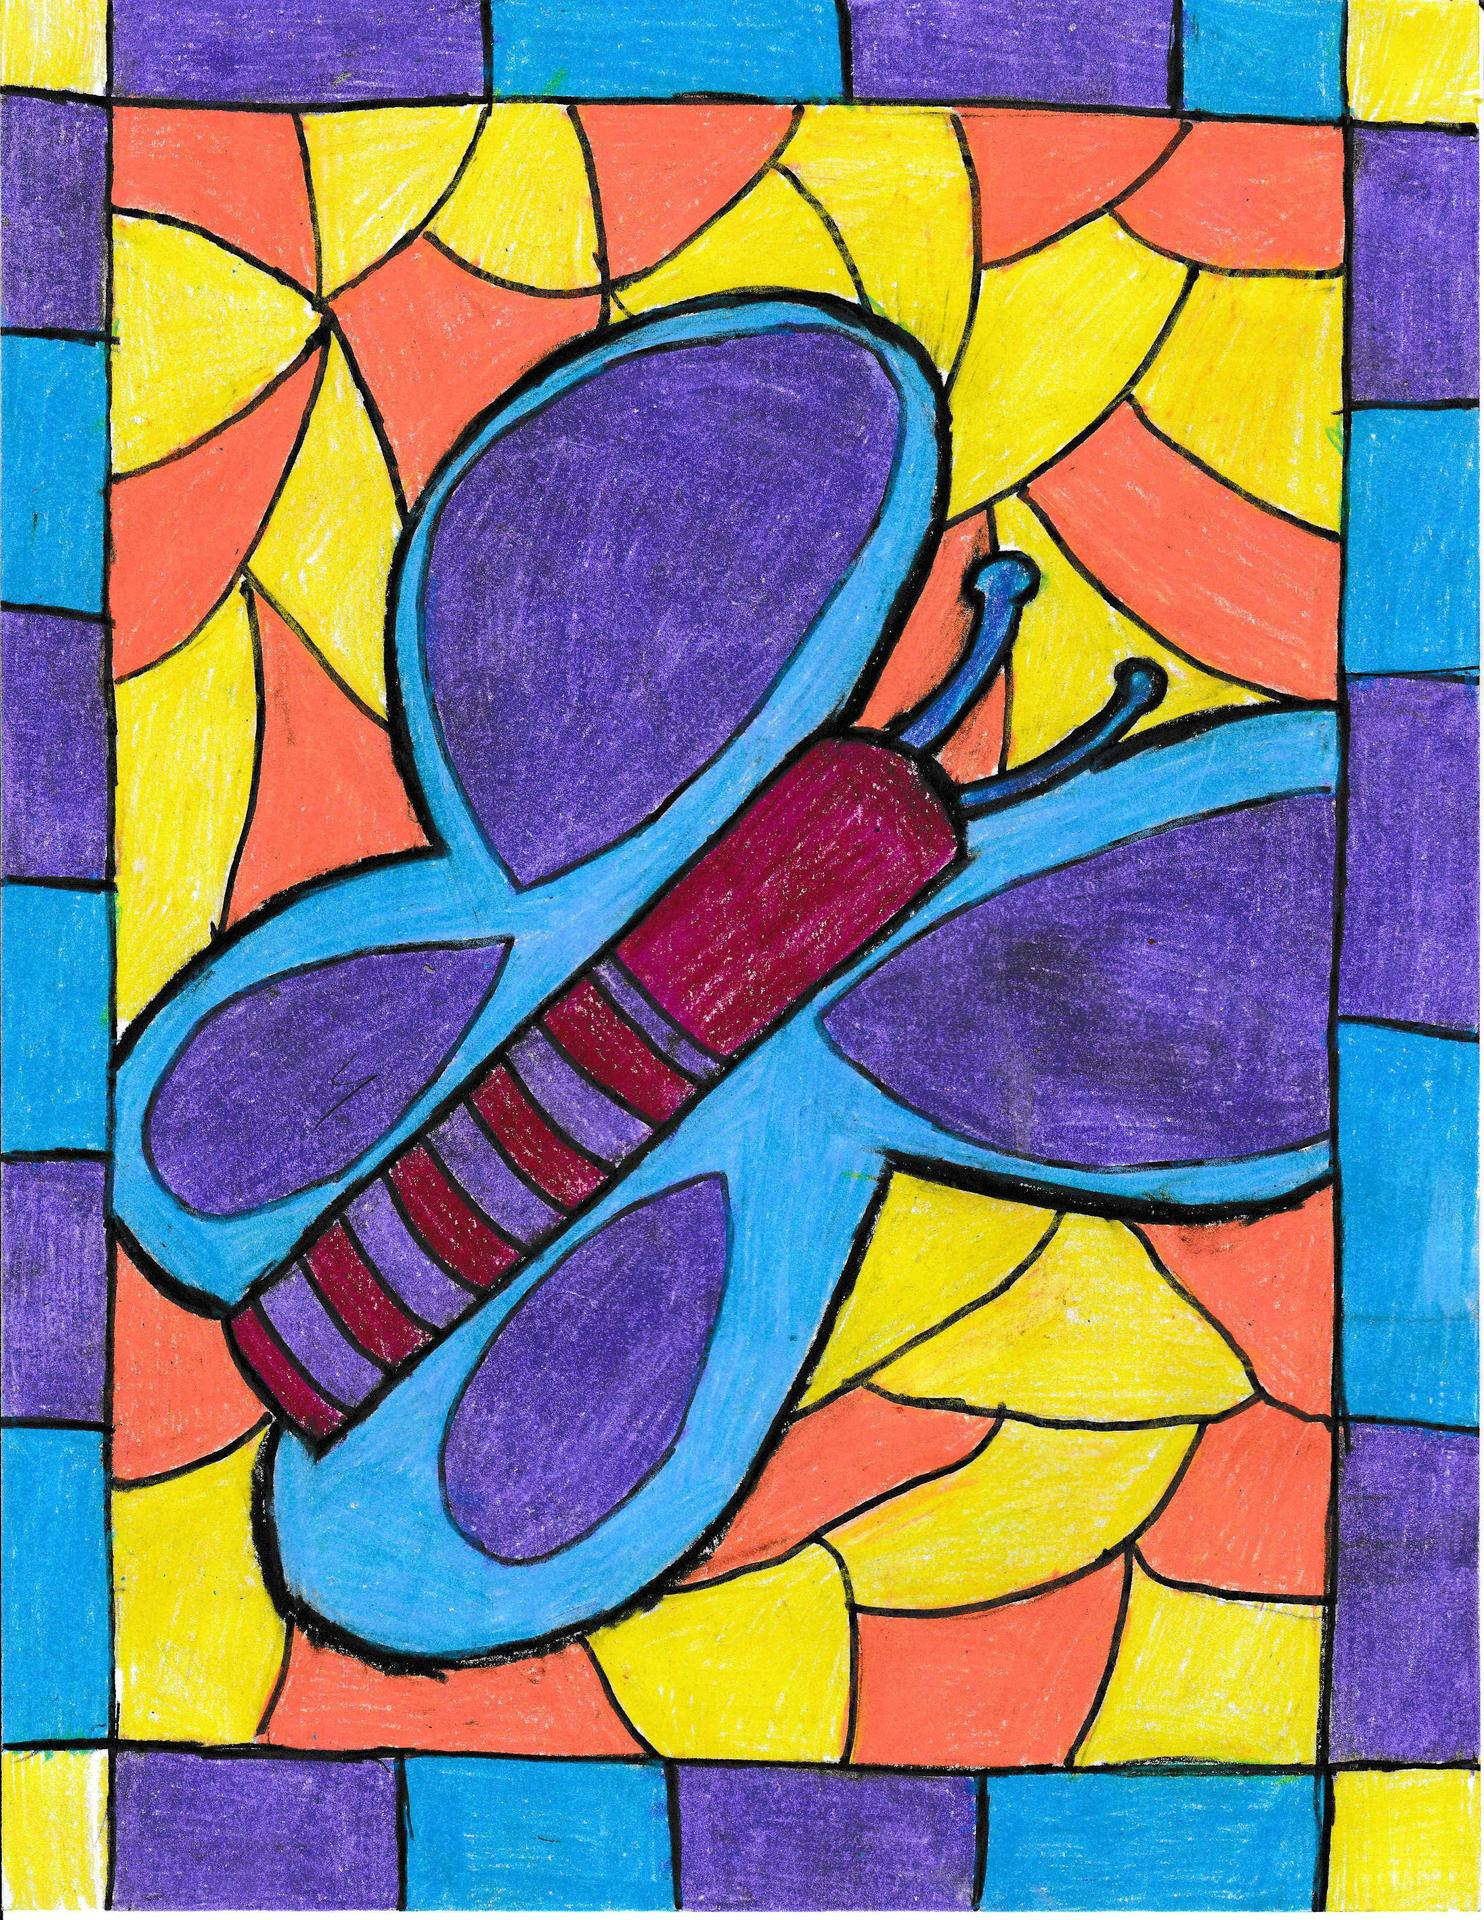 An elementary school student's brightly colorful drawing of a butterfly in stained glass art style